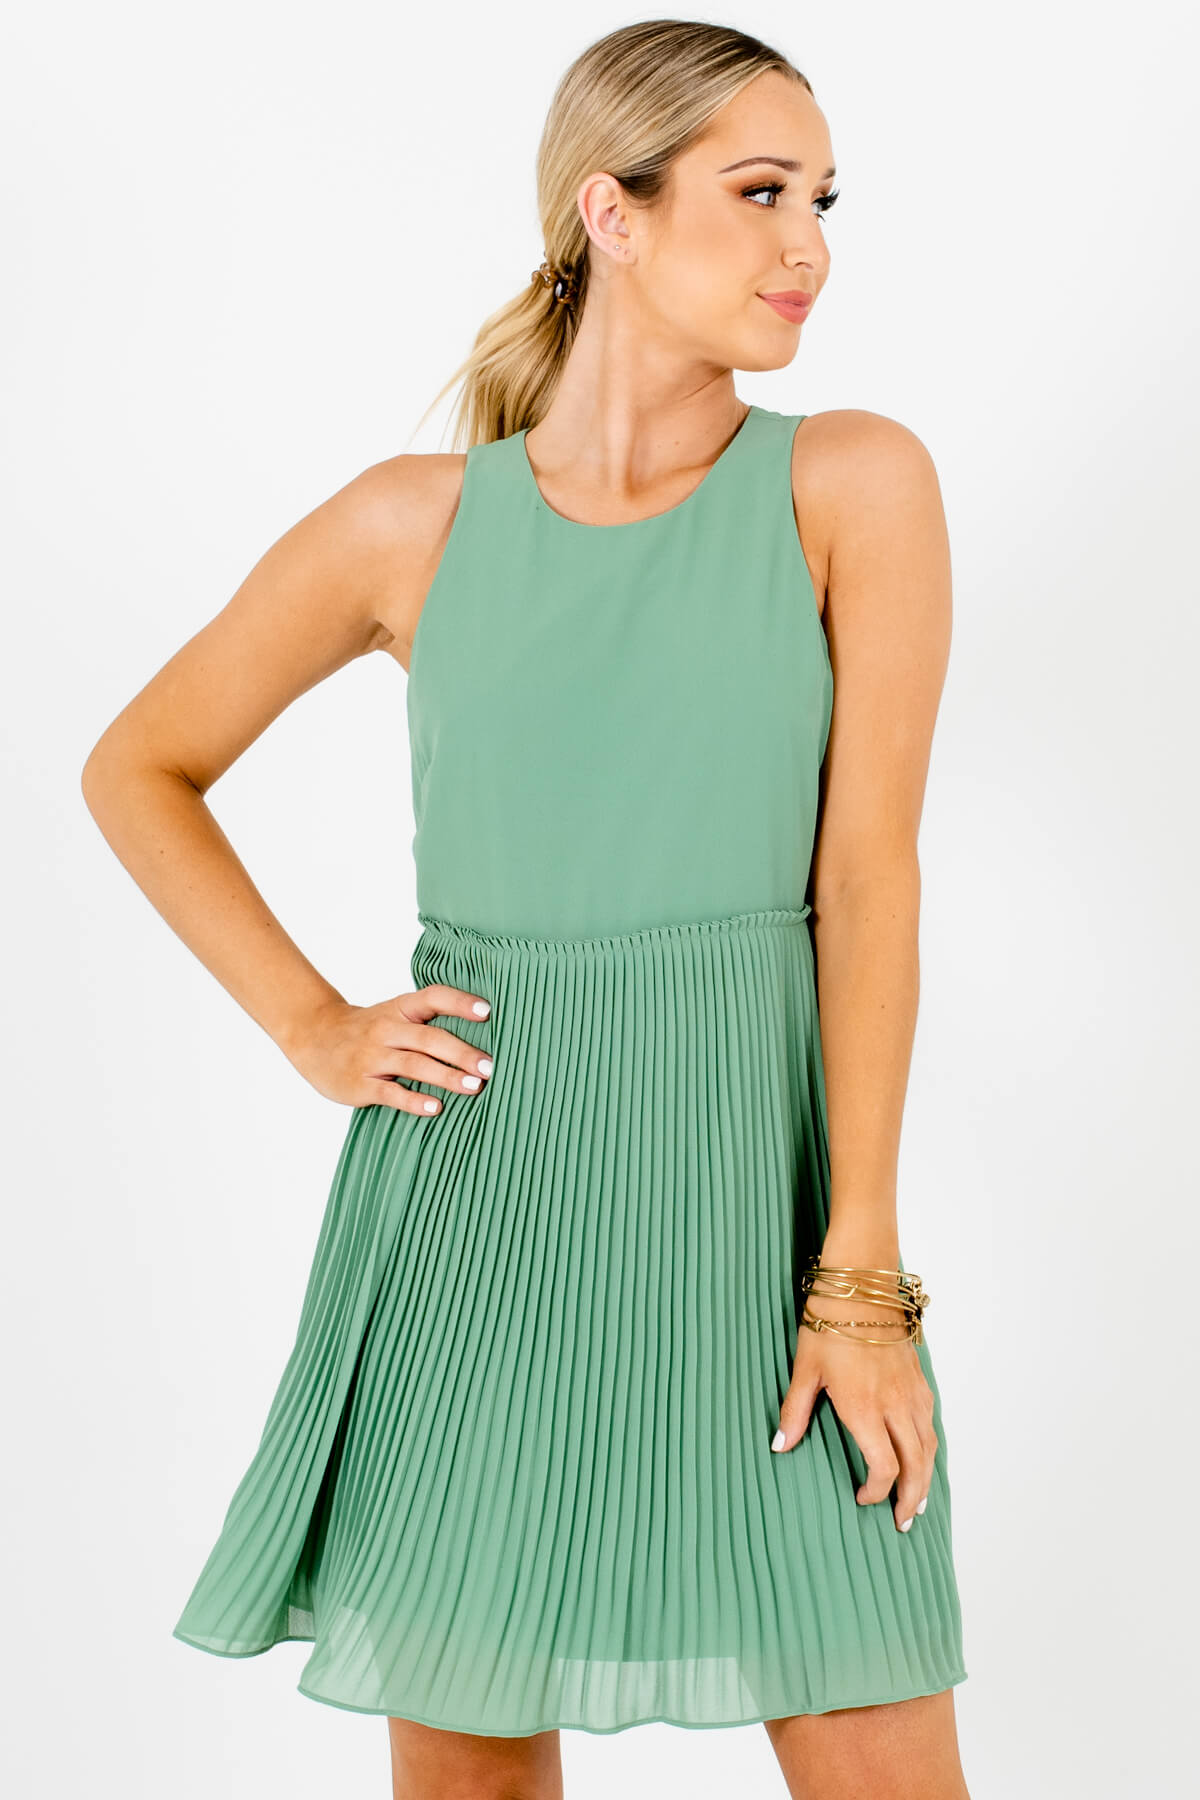 Light Green Pleated Mini Dresses Affordable Online Boutique